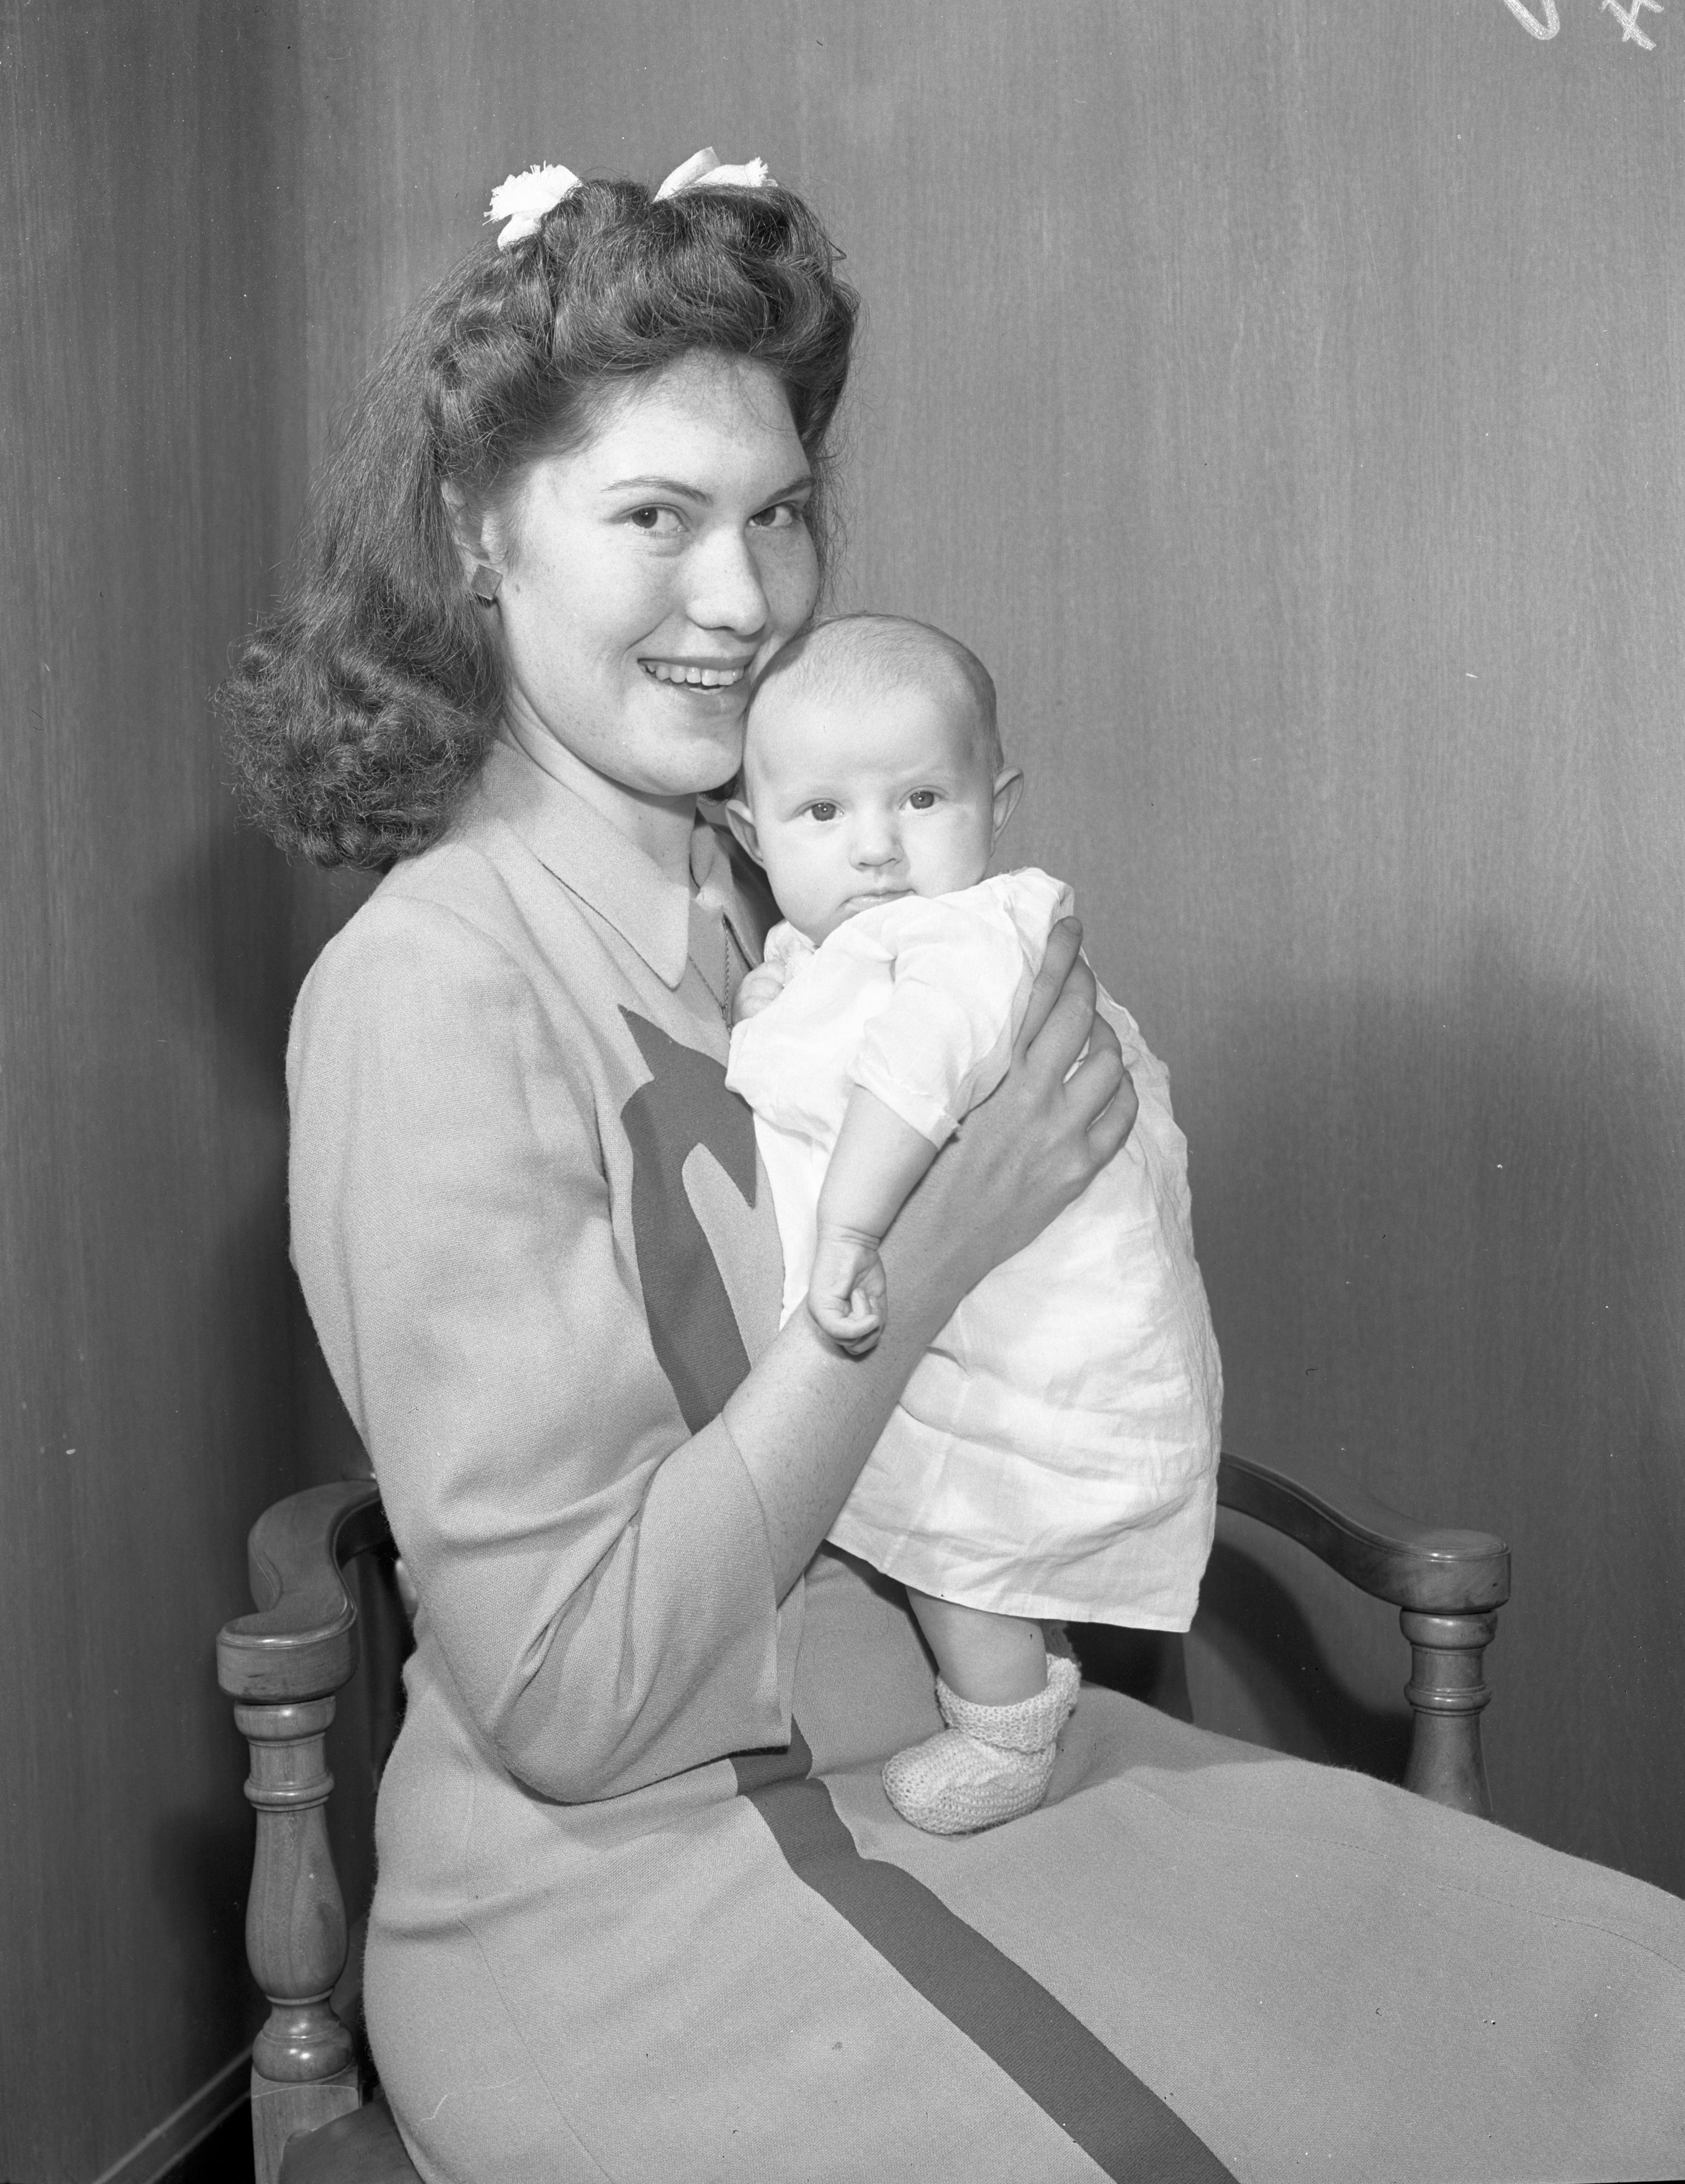 Ruby Templeton (Mrs. Arthur R. Templeton) and baby Sue Ann, October 1943 image